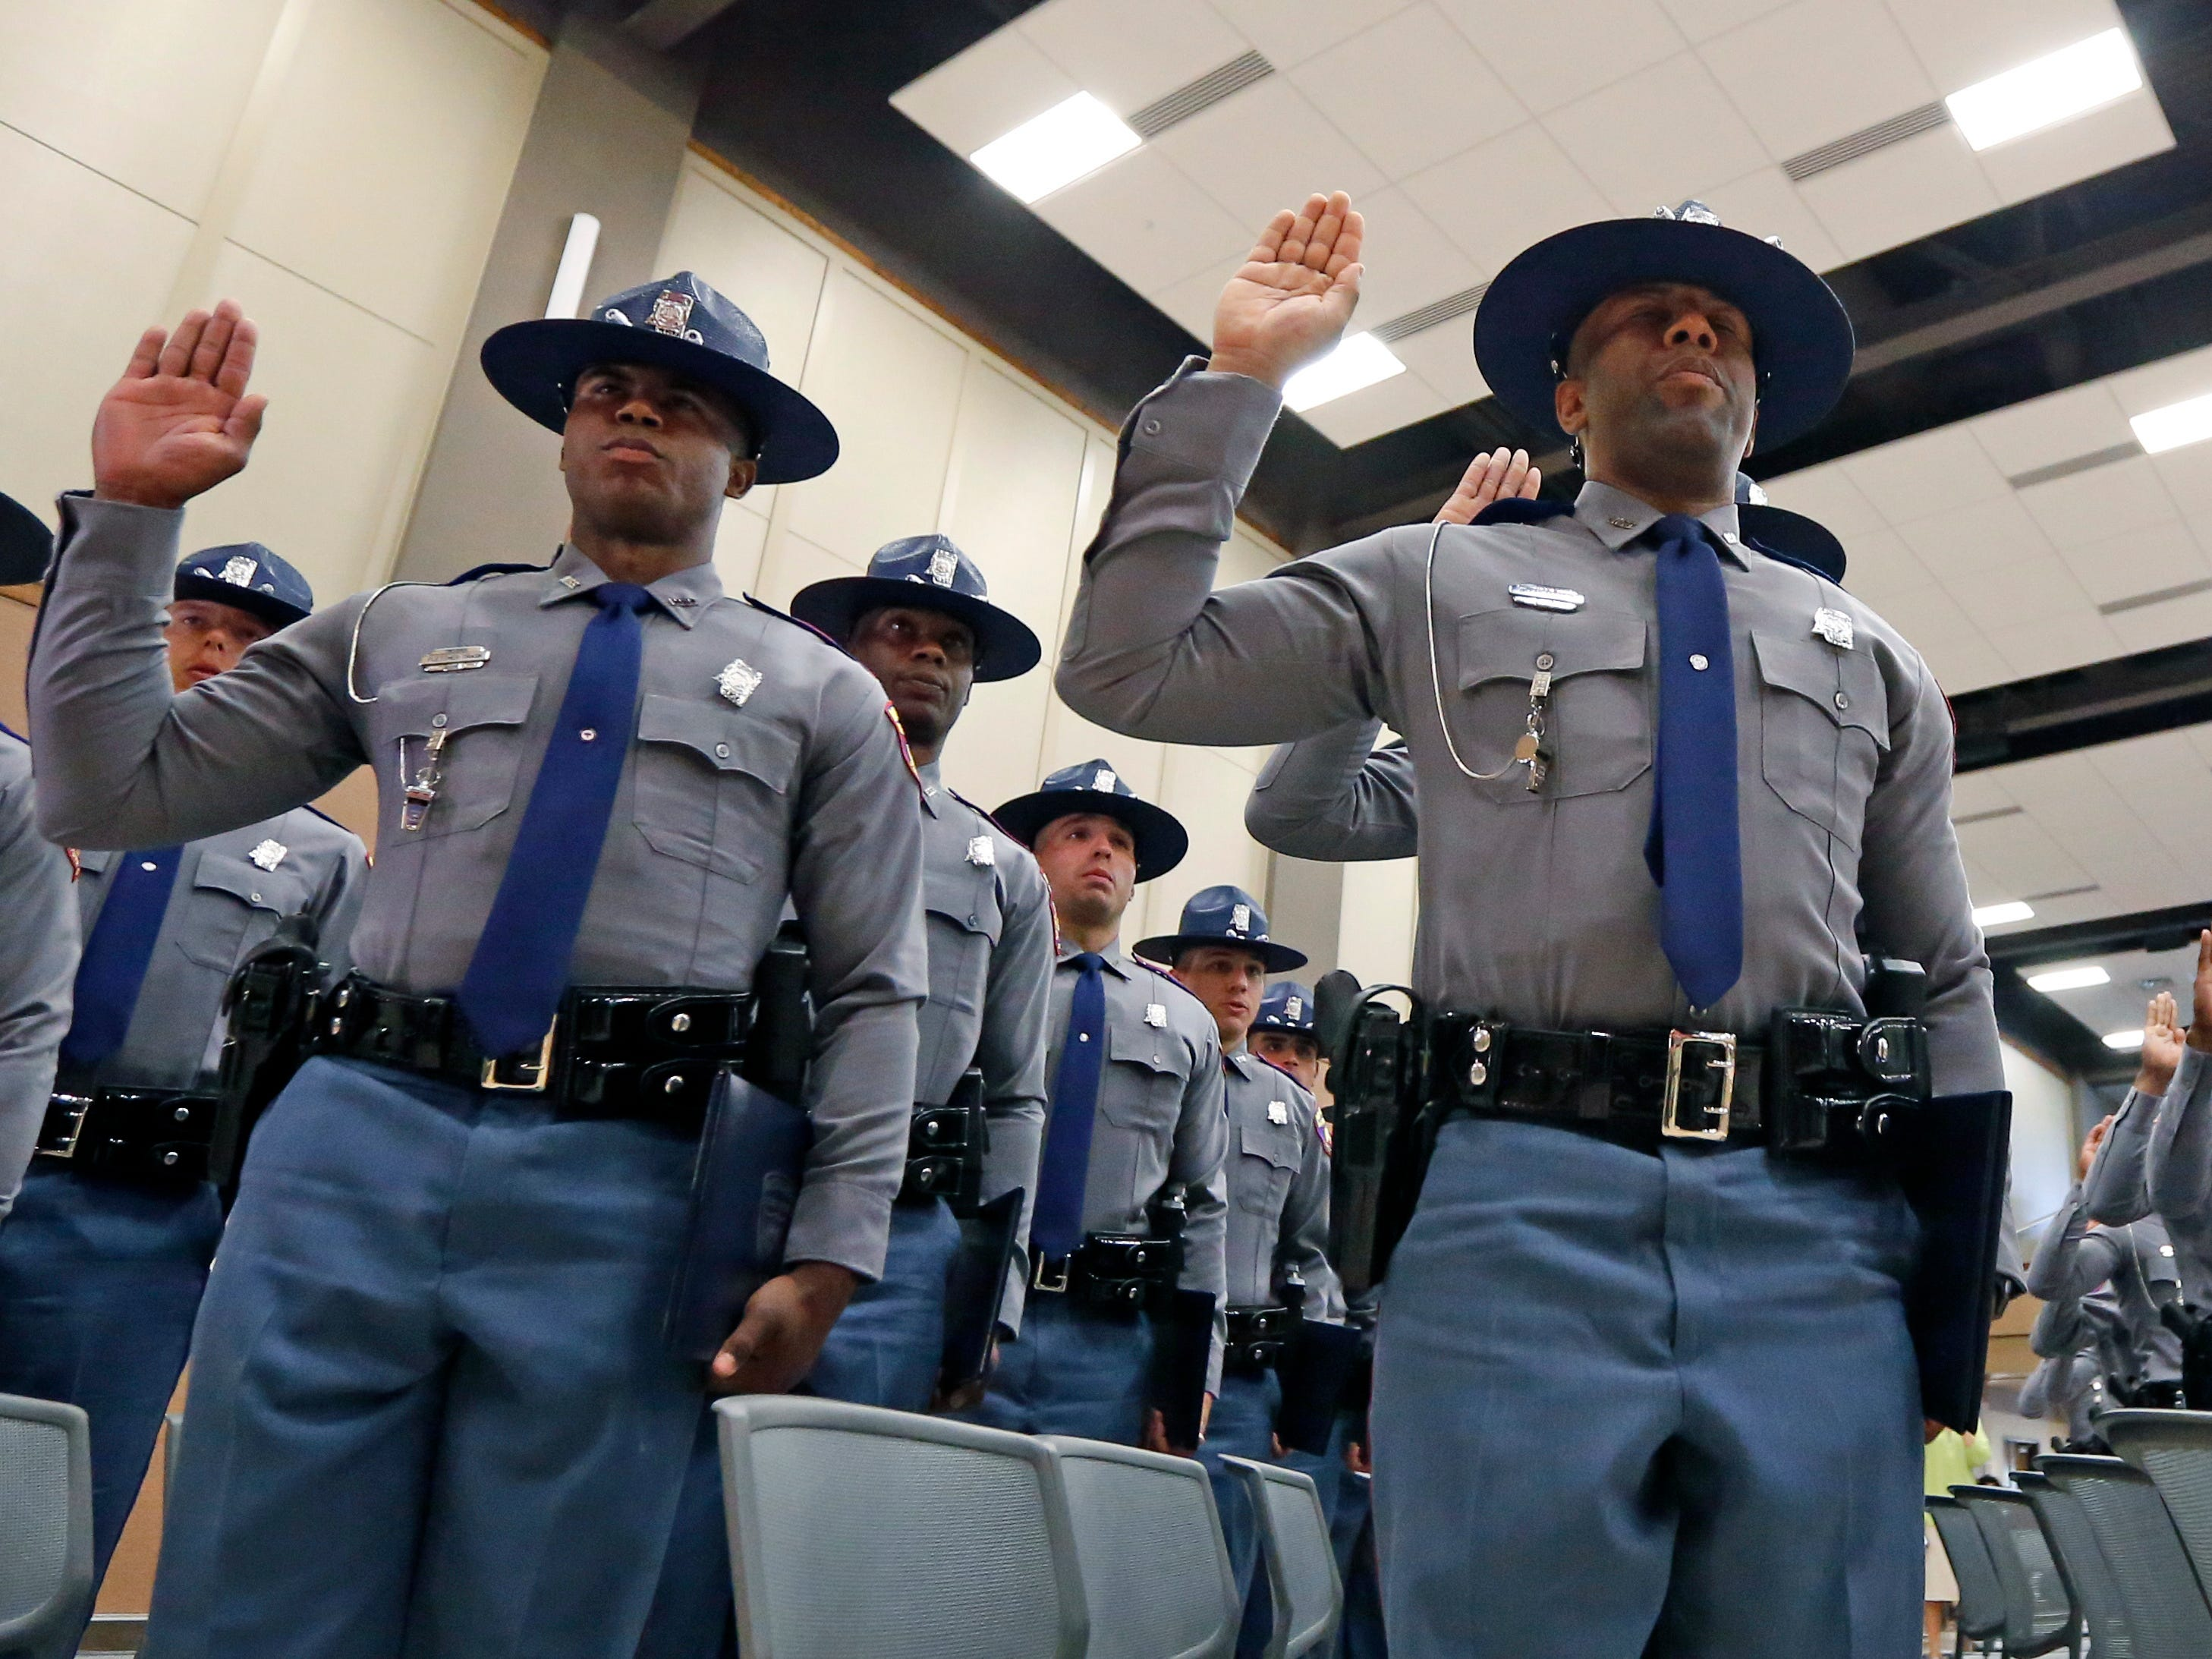 Members of the Mississippi Highway Safety Patrol Cadet Class 63 recite their oath of office in the Clyde Muse Center in Pearl, Miss., as they were sworn in as the newest Patrol troopers, Wednesday, May 1, 2019. The patrol's training lasts 22 weeks and involves classroom instruction, physical fitness, firearms and emergency operations training as well as a variety of police science courses.